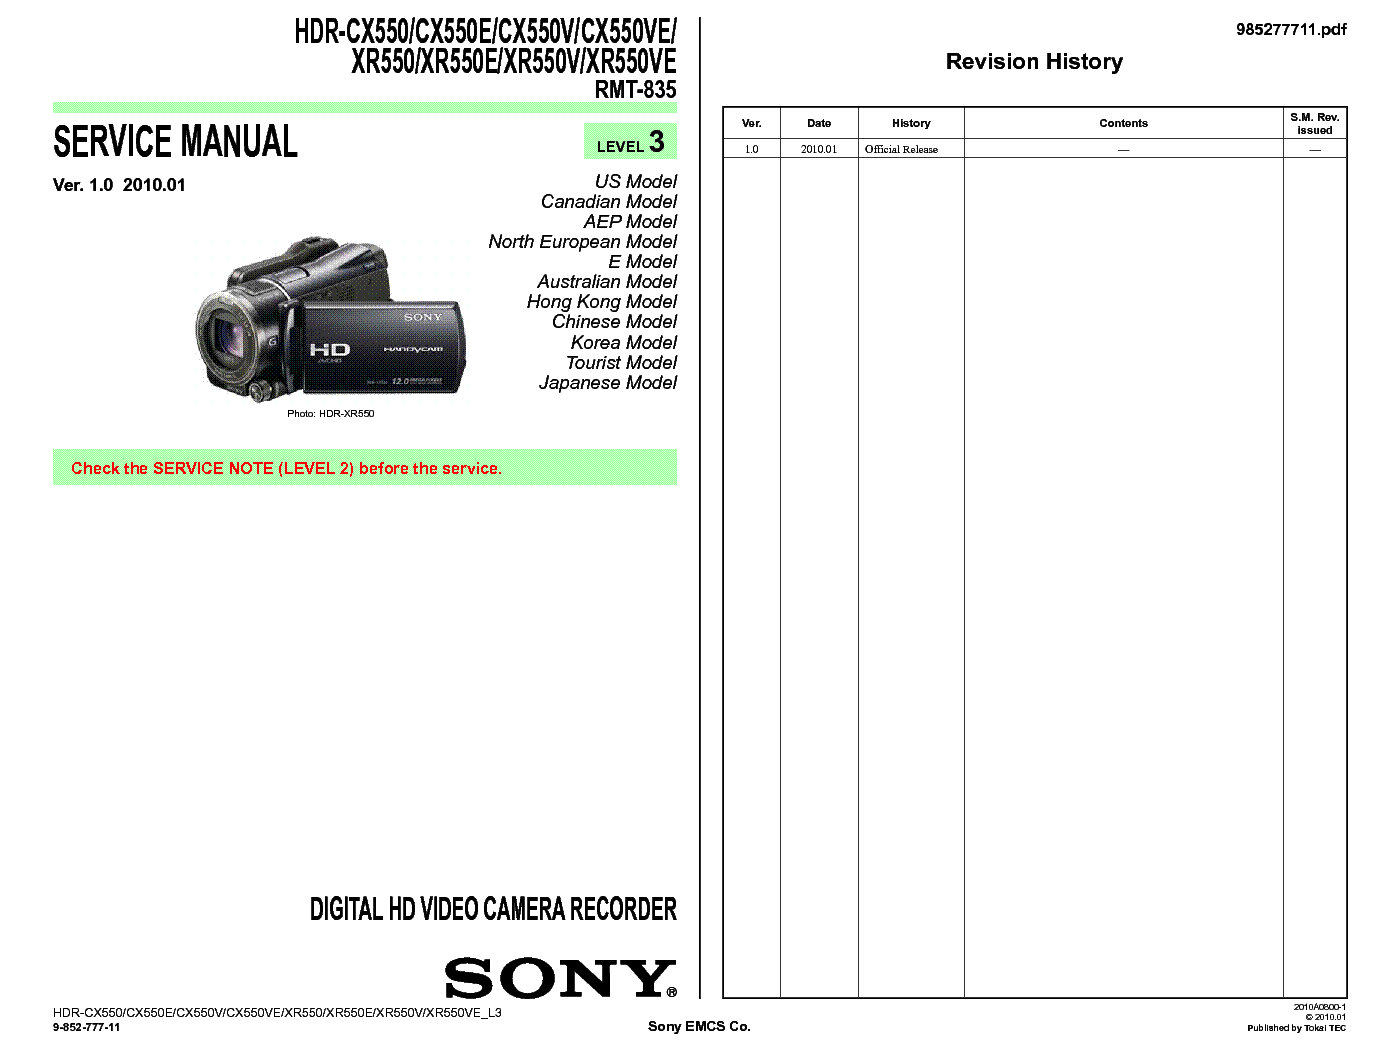 Raynox high definition conversion lens accessories for sony hdr.